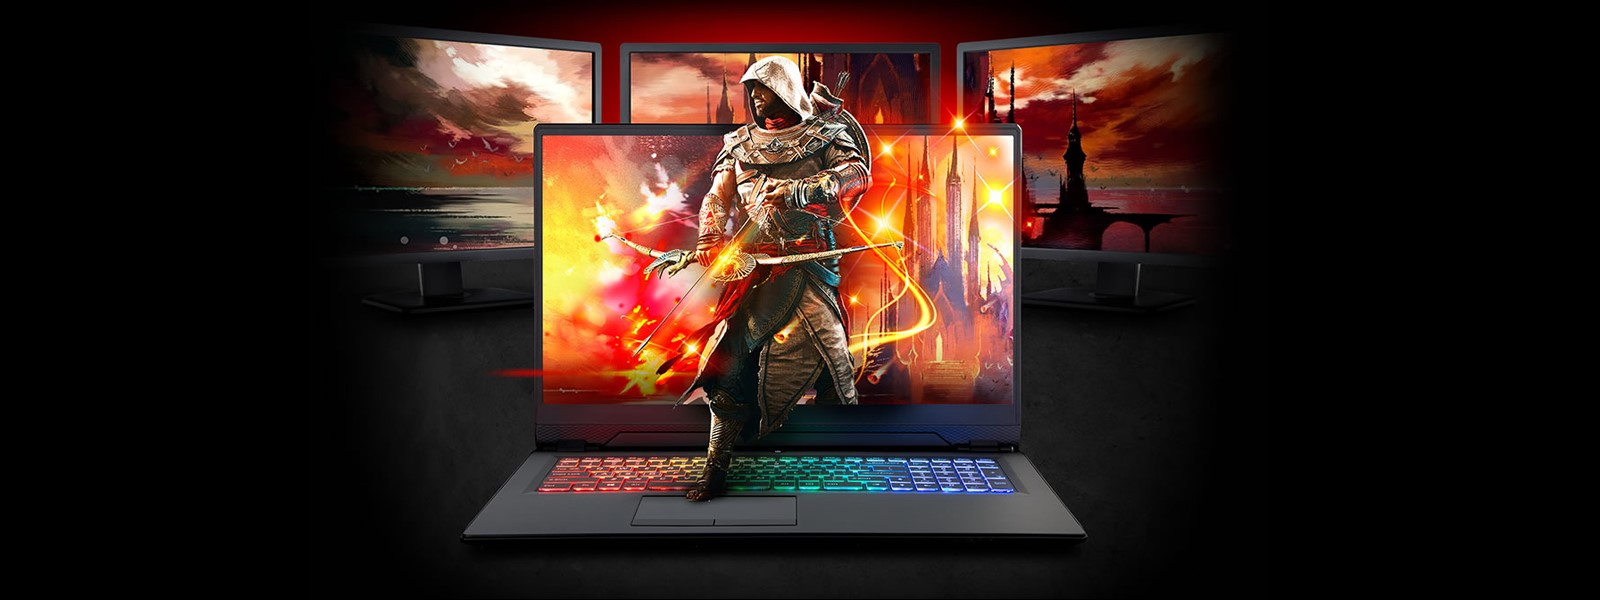 CLEVO-Computer-P970RN-NVIDIA-RTX-2080-Max-Q-Design-Intel-Core-9th-Gen-i7-9750H-Ultra-Slim-Gaming-Laptop-Custom-Notebook-Metal-Chassis-Features-Specification-6